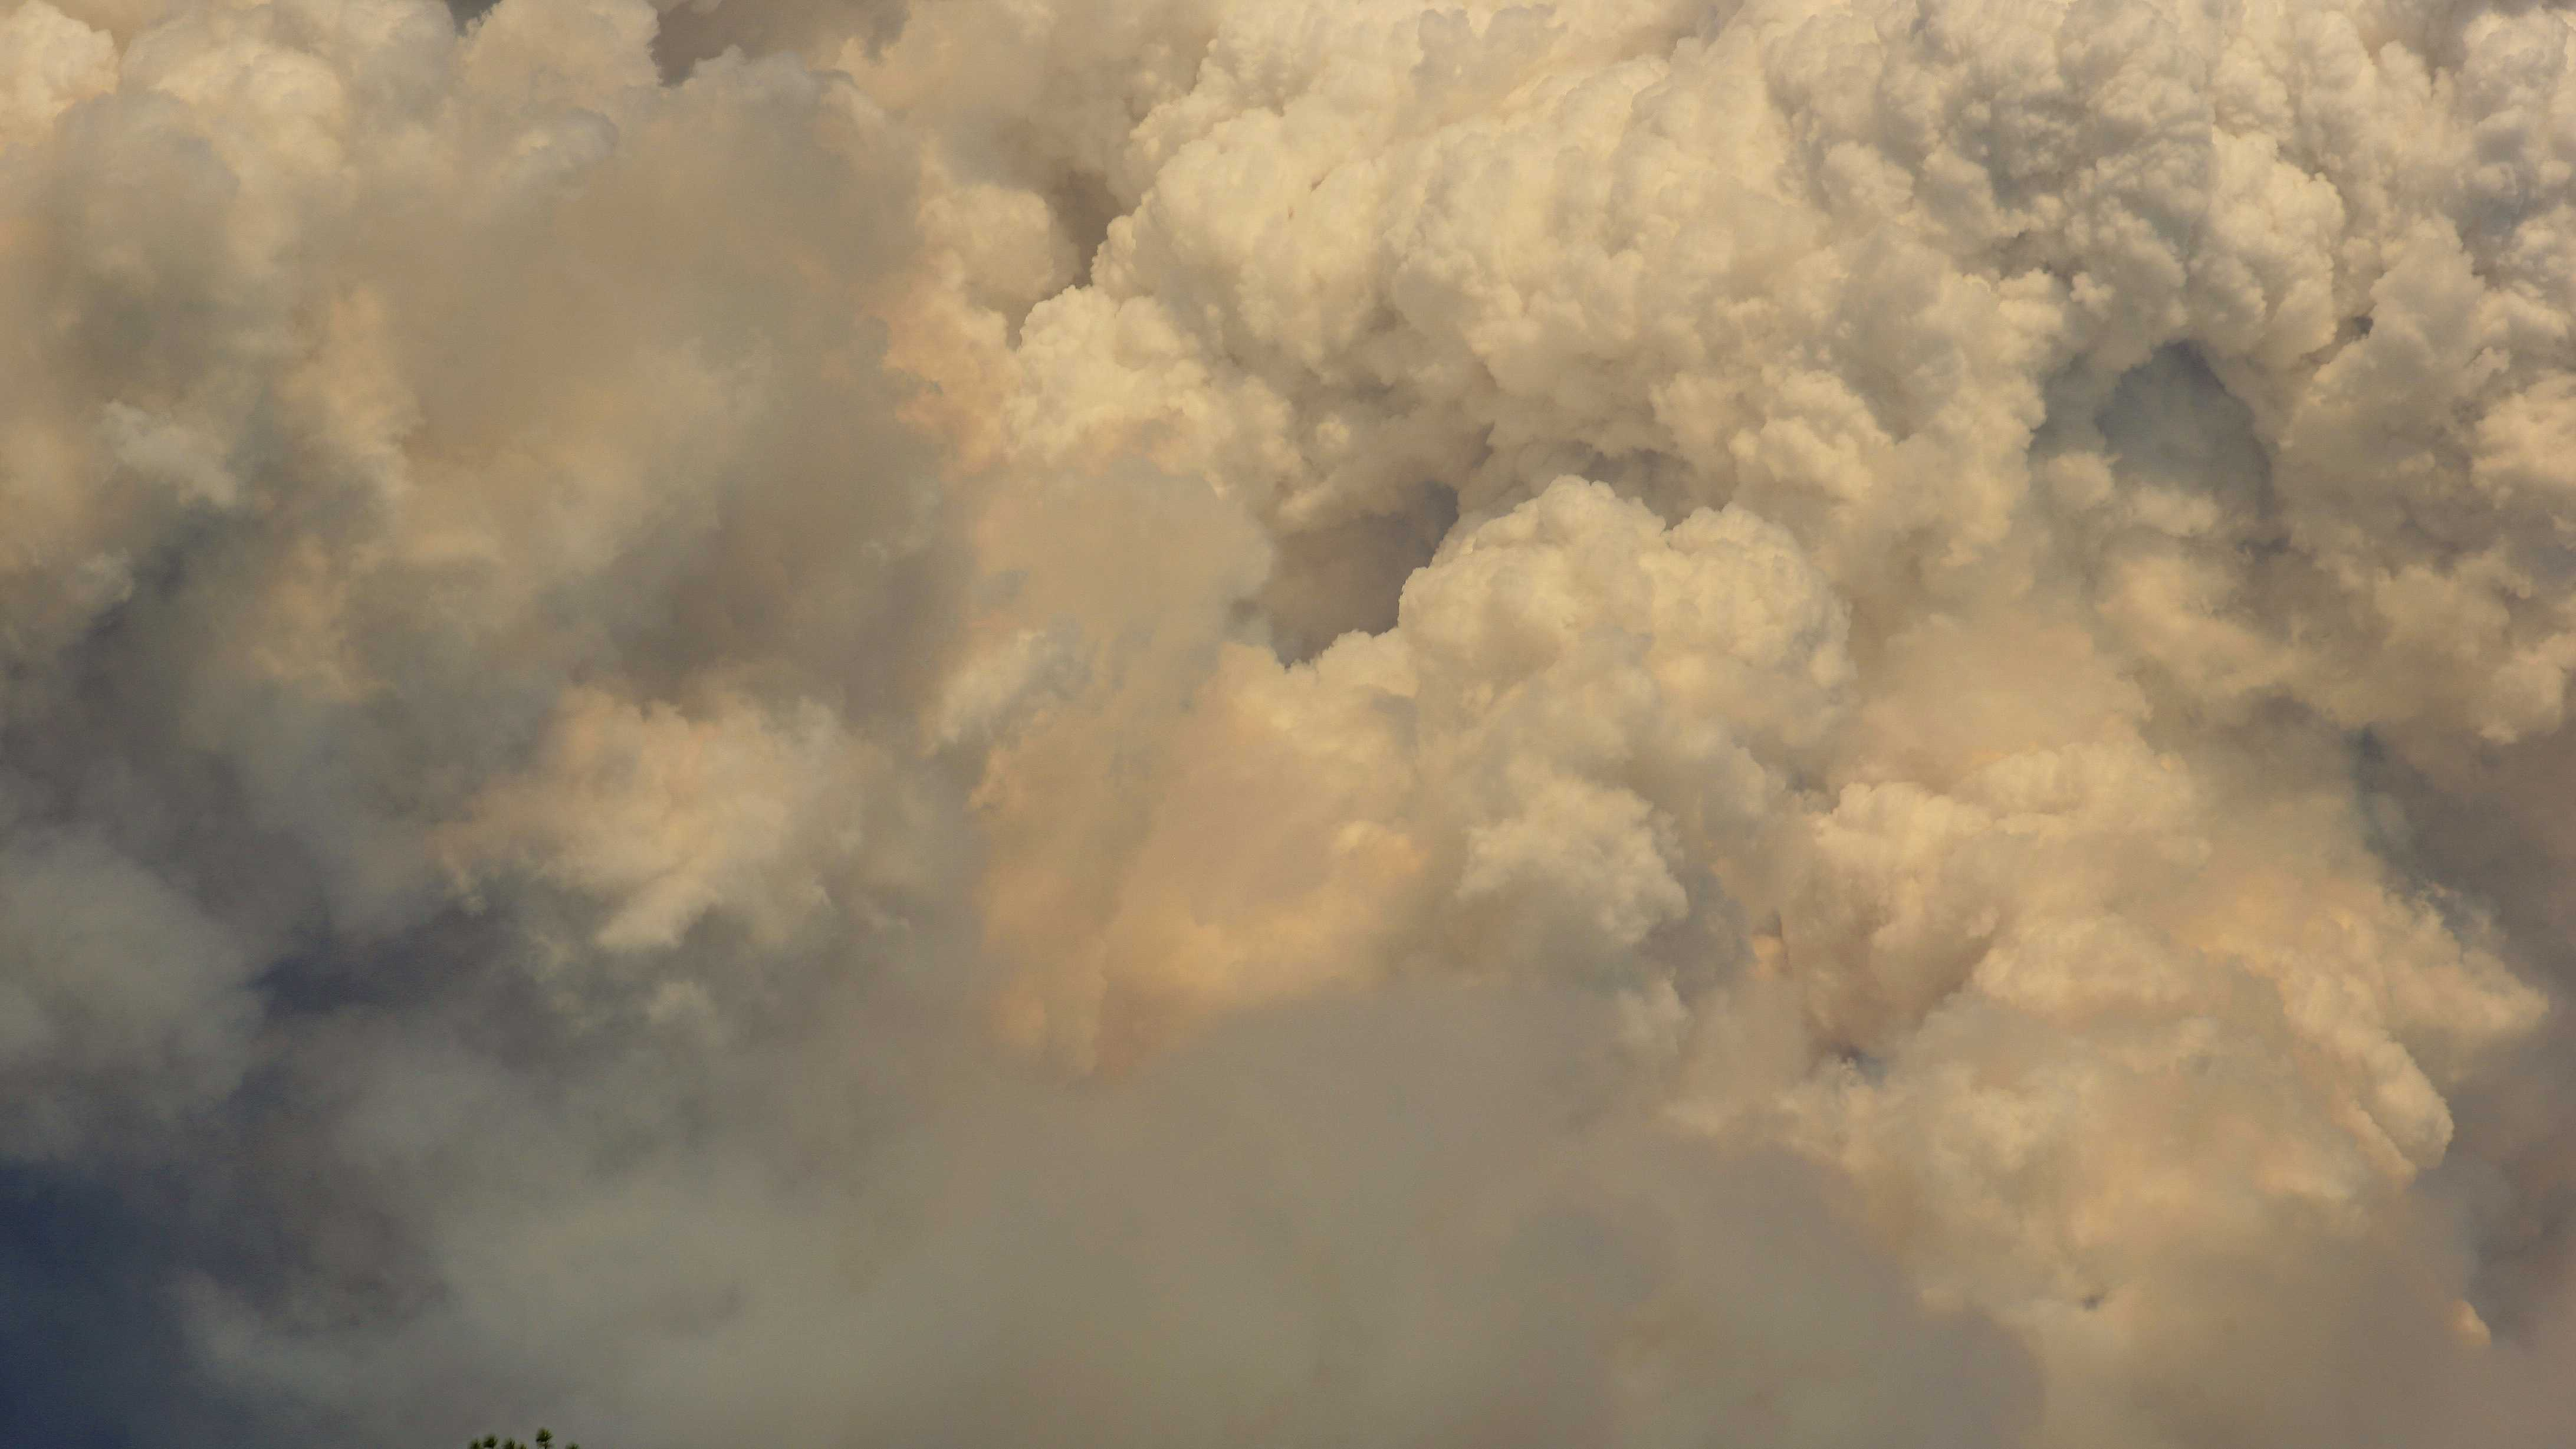 Plumes of pyrocumulus clouds originate from Rim Fire as seen from the town of Tuolumne.